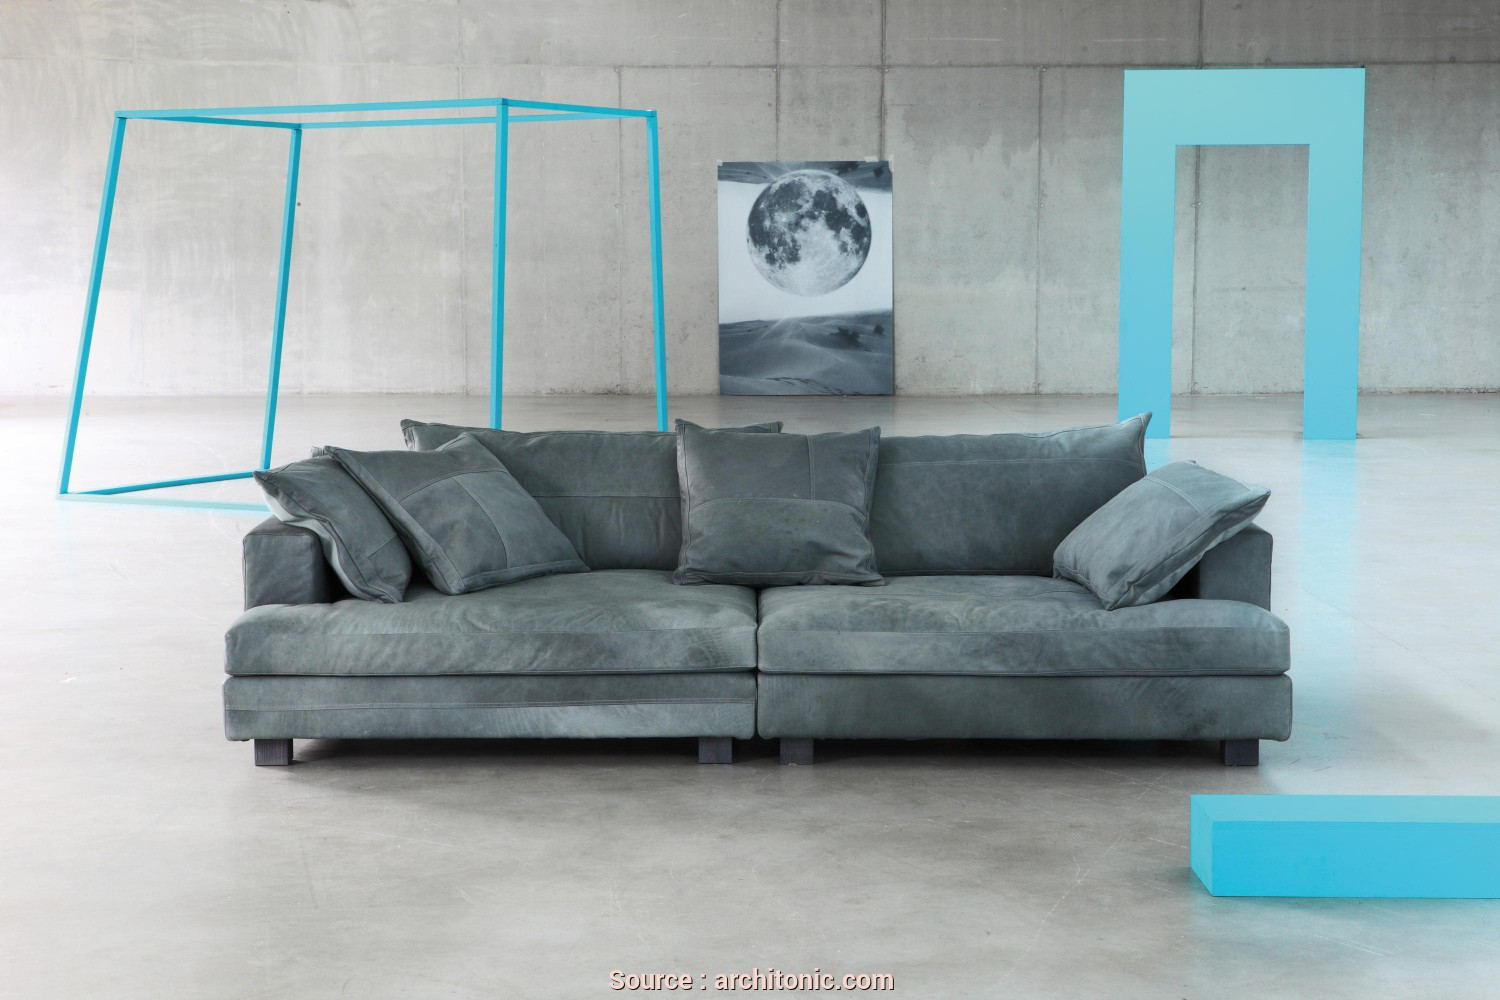 Divani Moroso Dwg, Buono CLOUD ATLAS, Sofas From Diesel With Moroso, Architonic